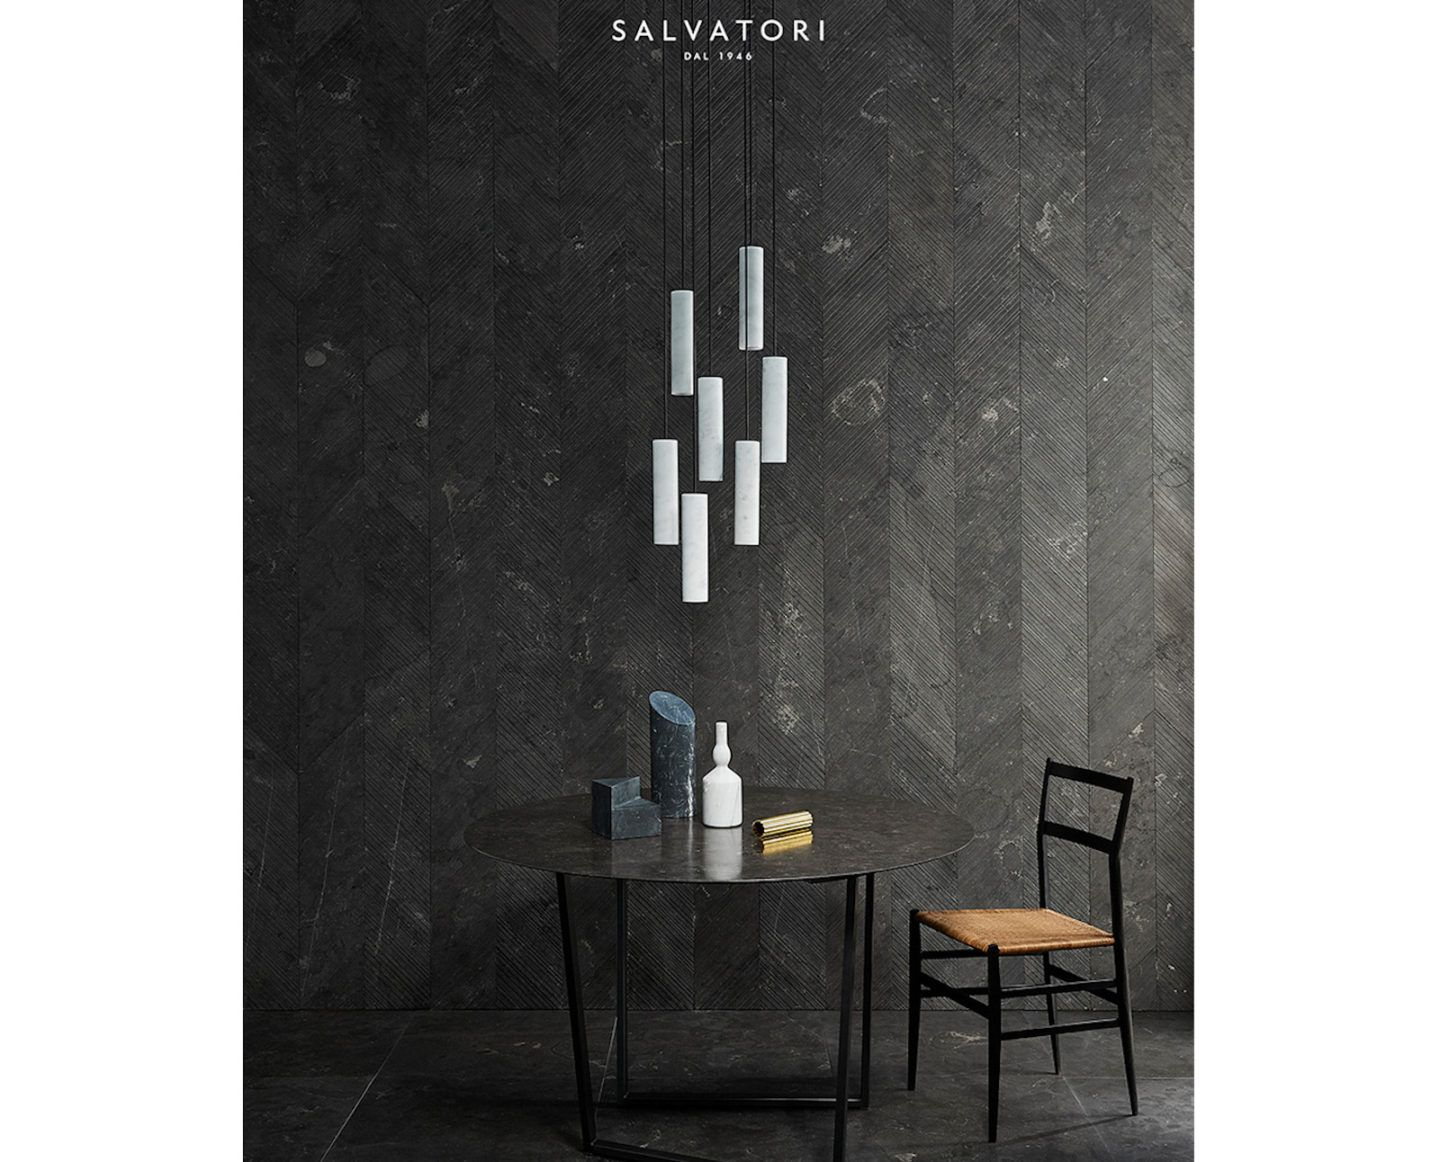 IGNANT-Design-Gabriele-Salvatori-Collaborations-07